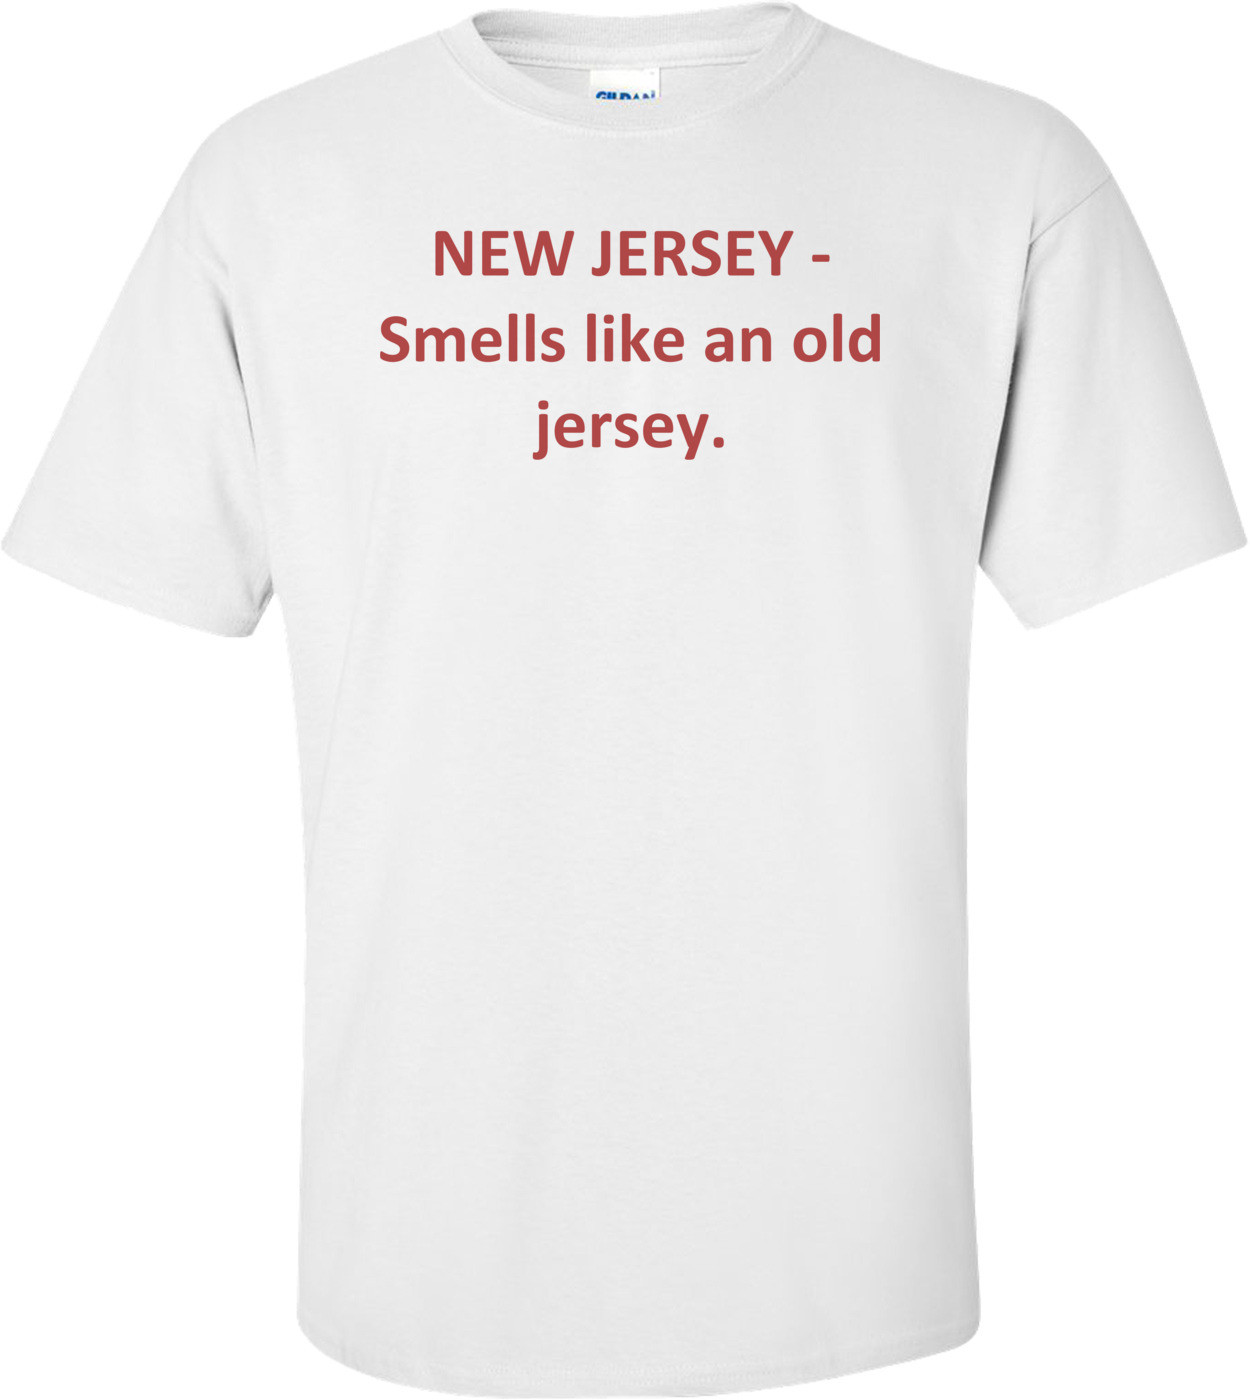 NEW JERSEY - Smells like an old jersey. Shirt